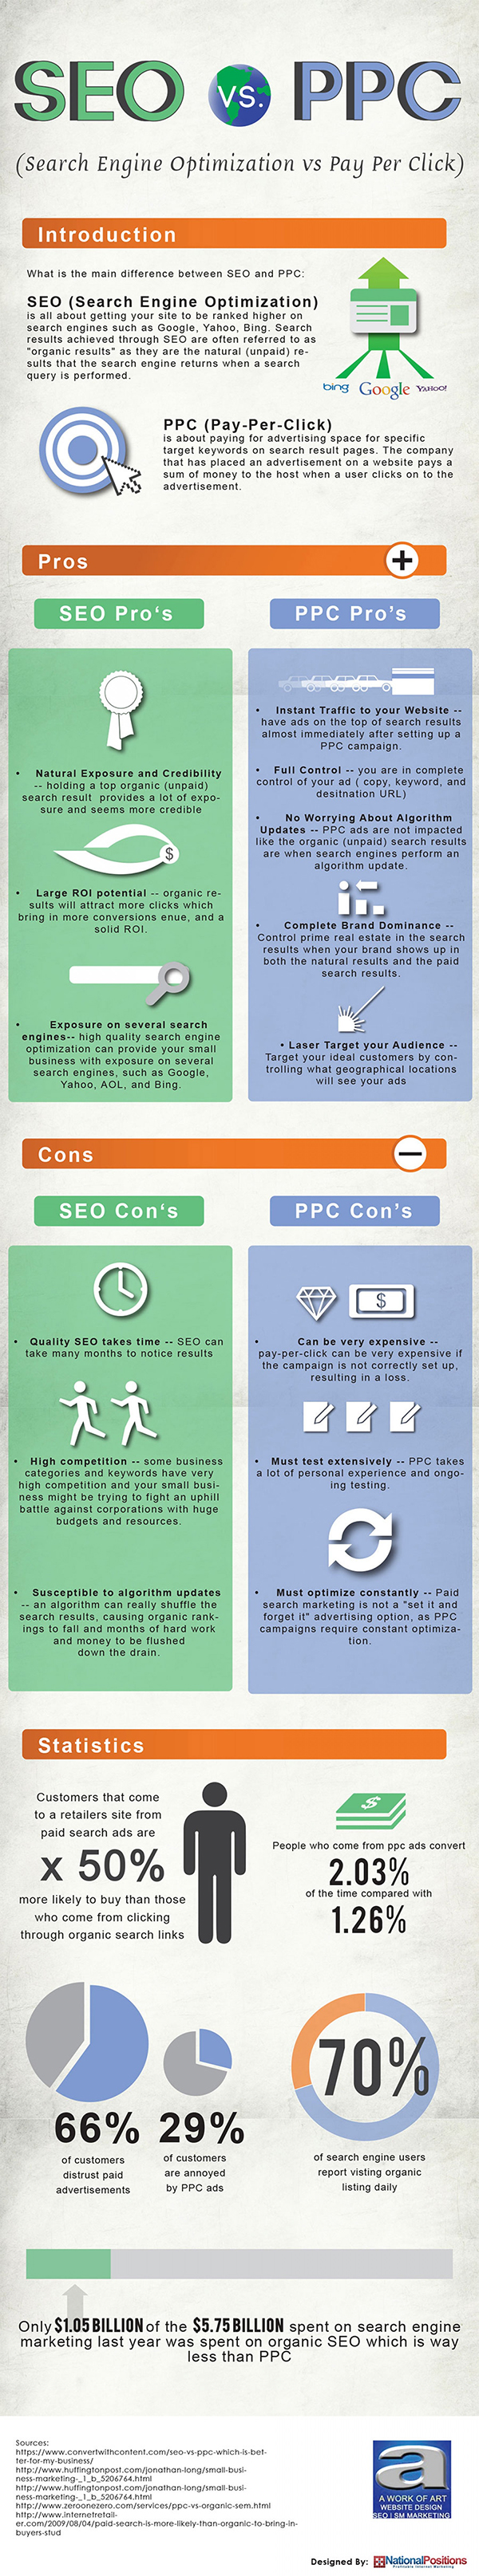 SEO or PPC The Pros and Cons of SEO and Paid Adverts